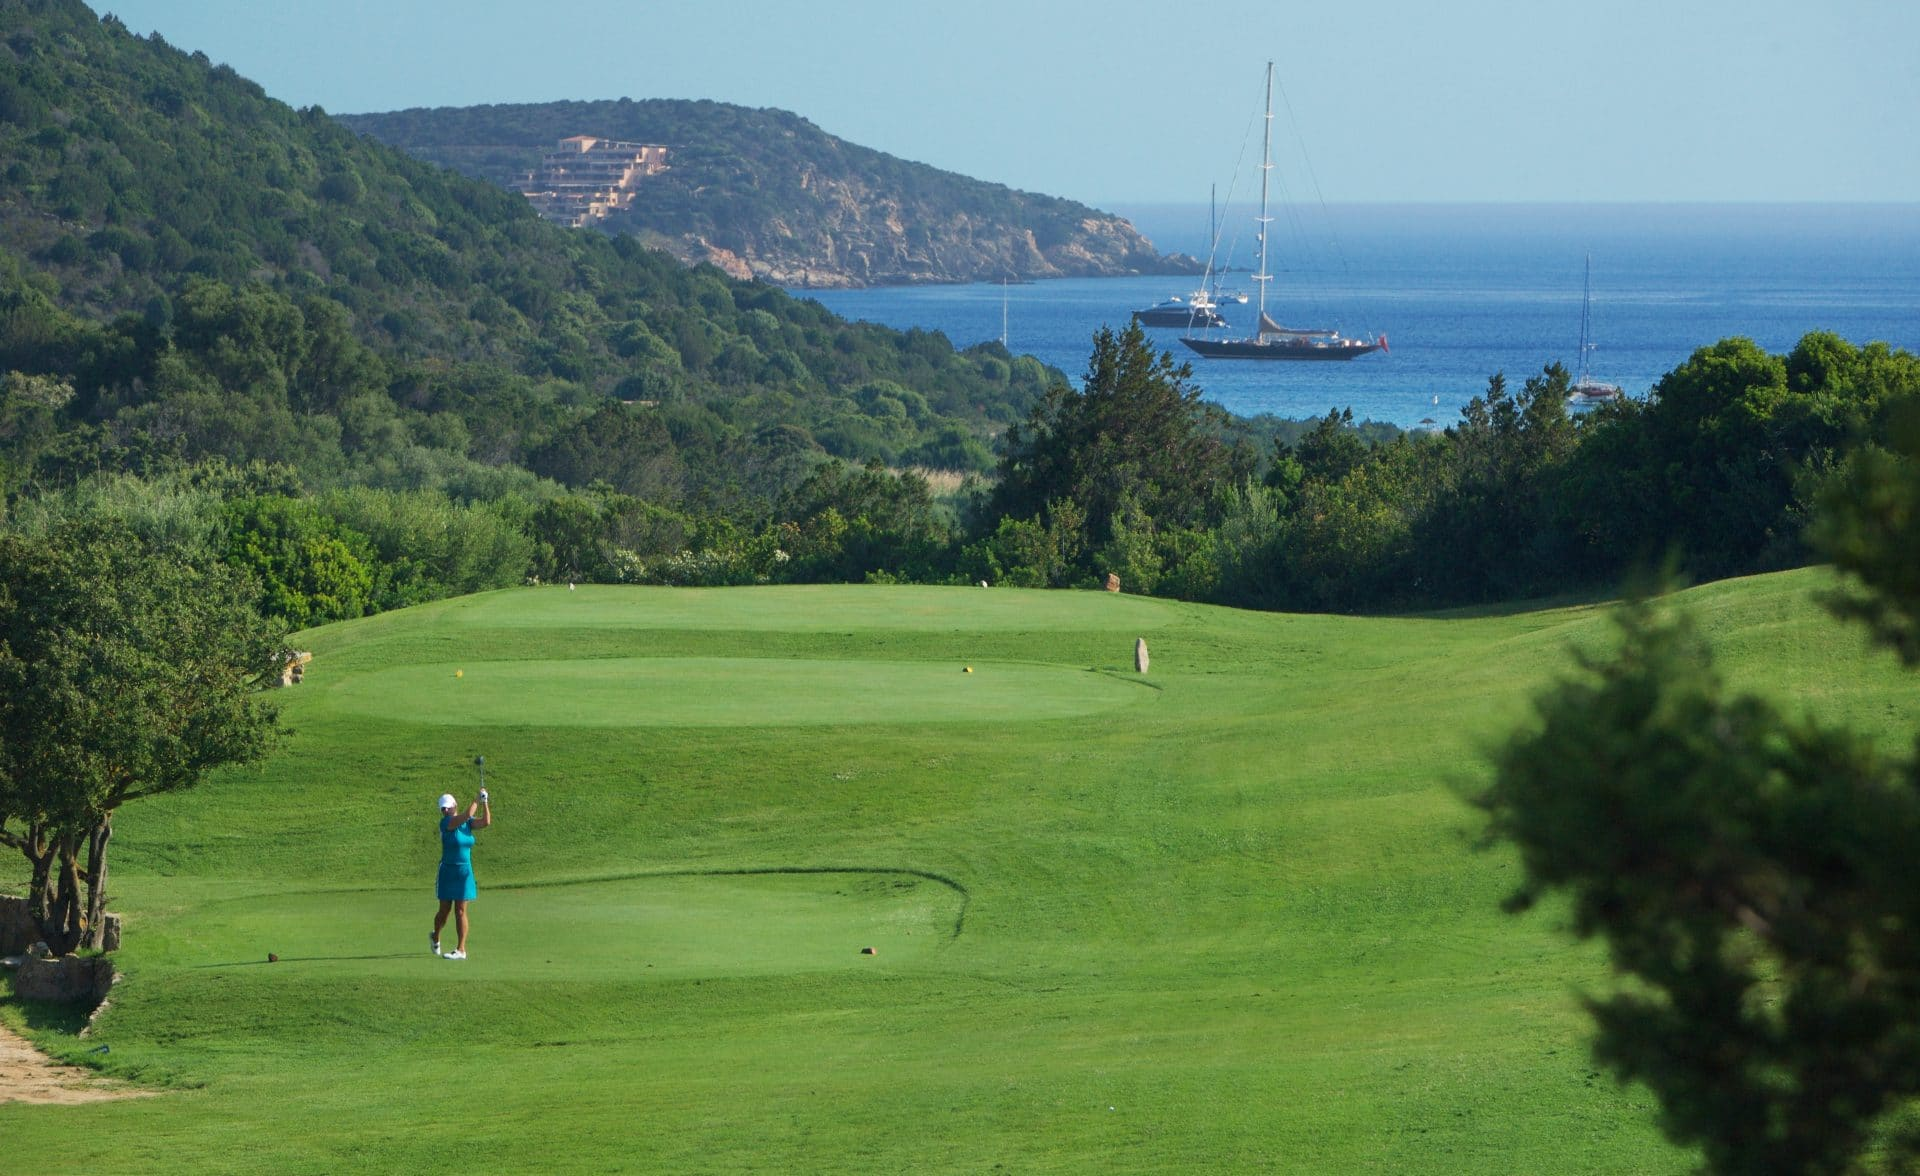 Costa Smeralda: perfect even for golf lovers!